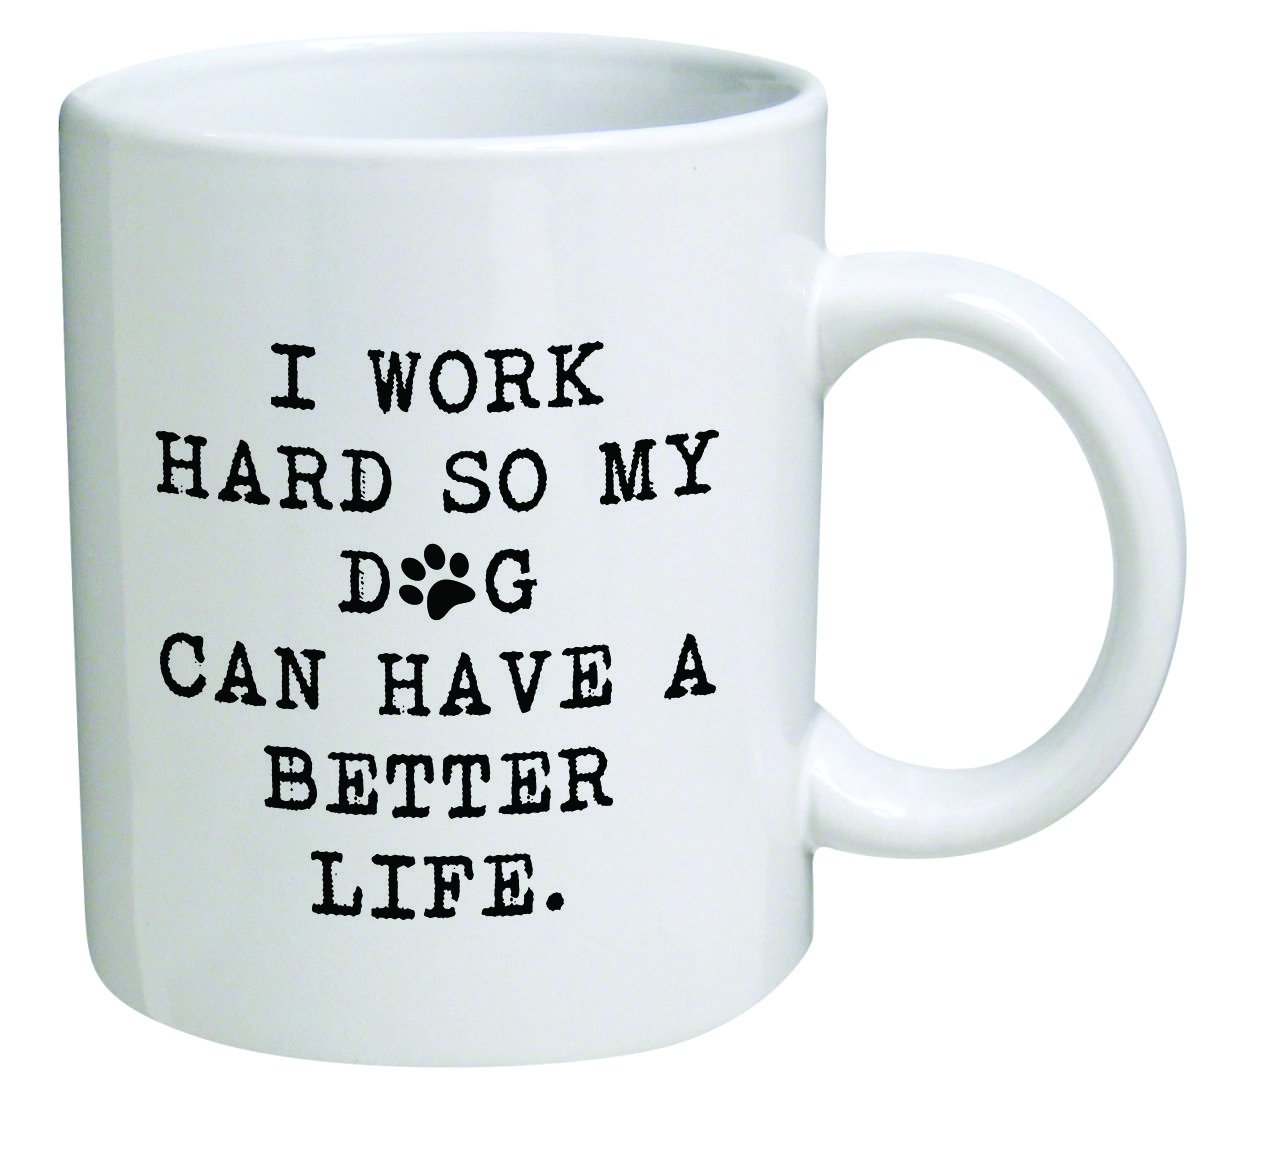 Funny Mug 11OZ - I work hard so my dog can have a better life - Inspirational novelty, brother. Birthday gift for coworkers, Men & Women, Him or Her, Mom, Dad, Sister - Present Idea for a Boyfriend by della Pace (Image #1)